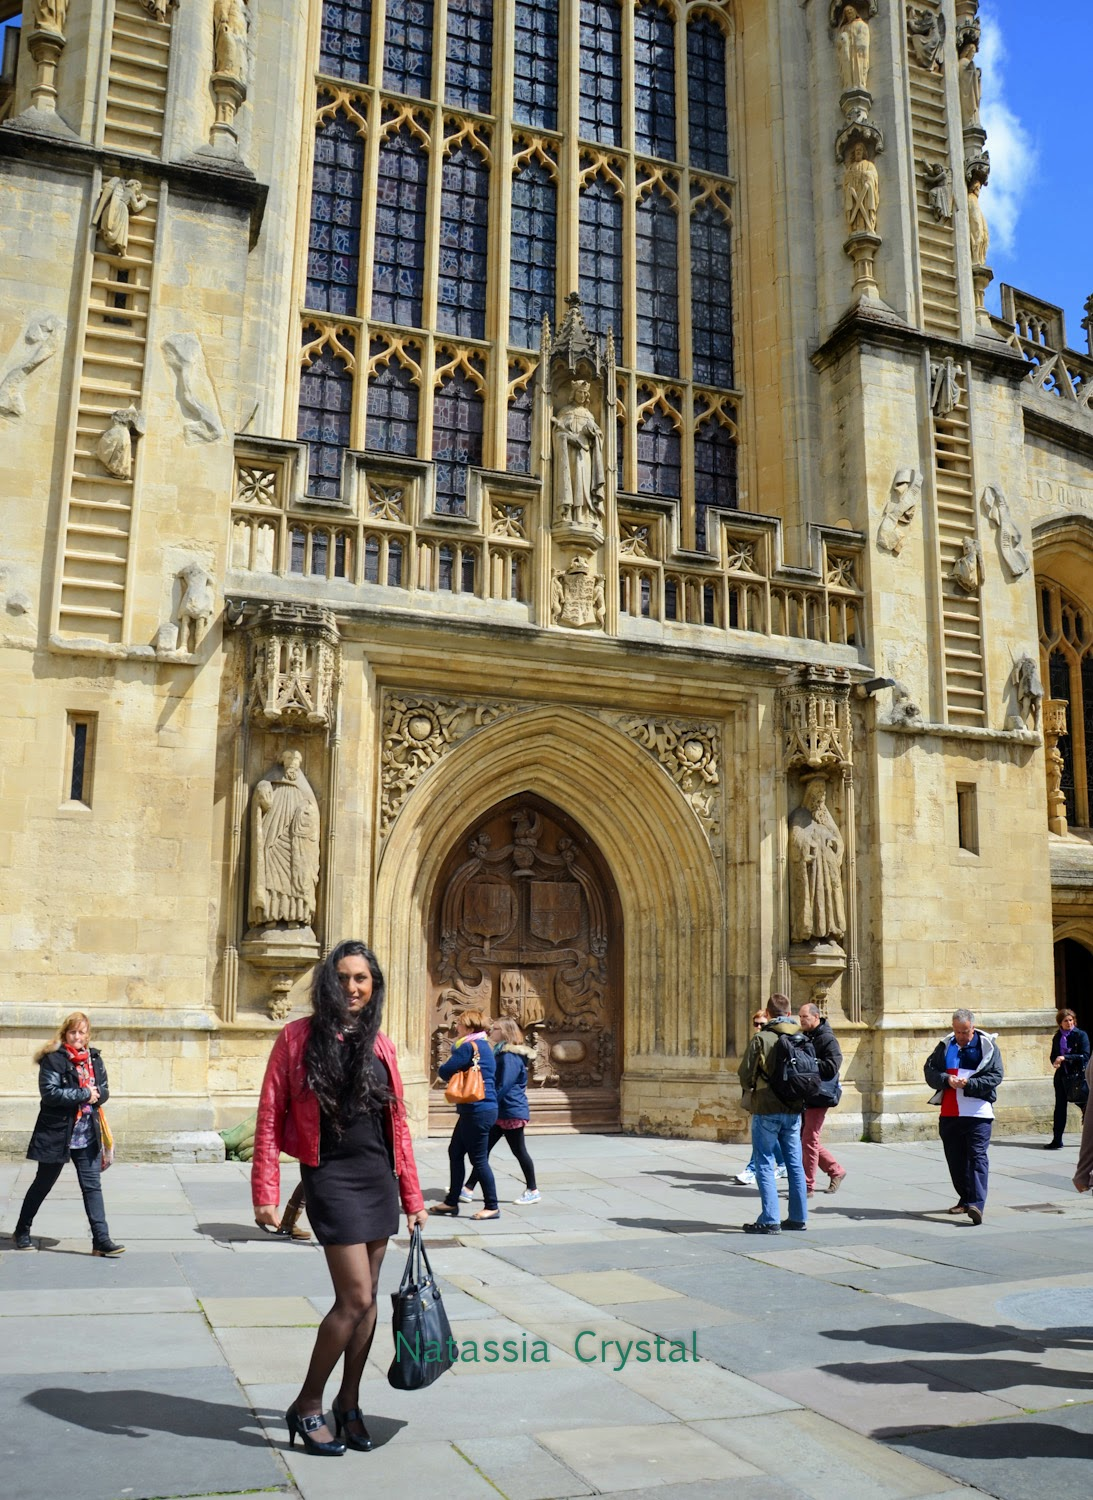 Standing in front of Abbey Church in a black dress, red leather jacket and black high heels